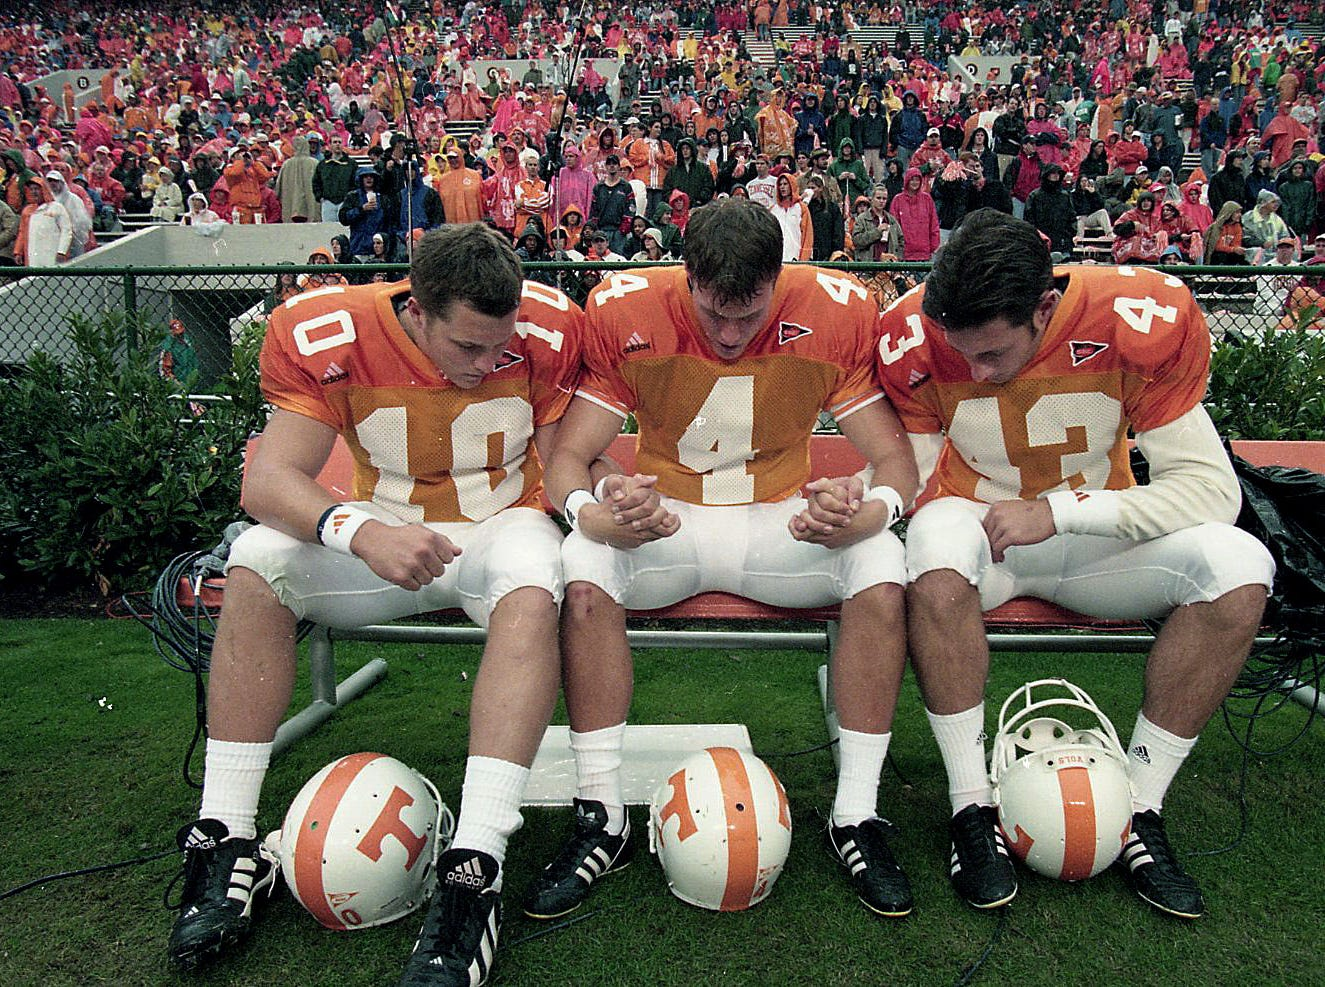 University of Tennessee kickers Benson Scott, left, Jeff Hall, center, and David Leaverton stop to pray after their warmups before their game Nov. 14, 1998.